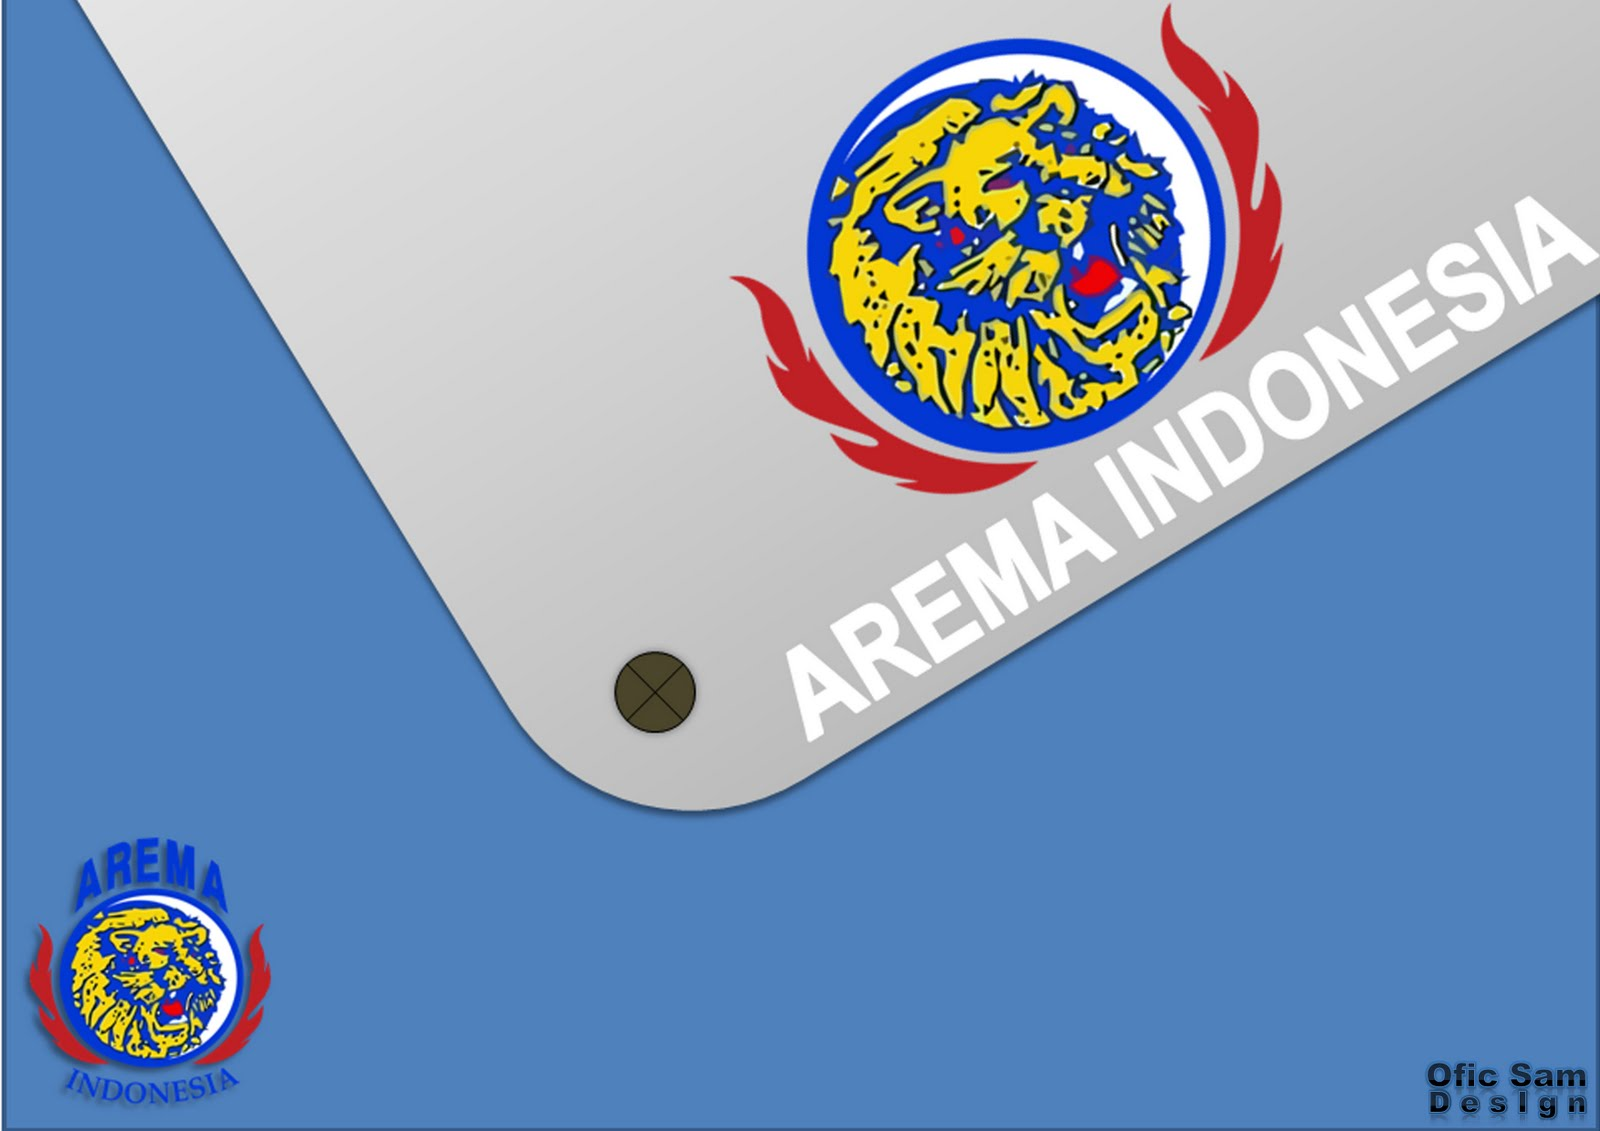 http://4.bp.blogspot.com/-Atylf1m7LUE/Tb-IbICZ5JI/AAAAAAAAAJQ/R230JwJv7as/s1600/wallpaper+arema+indonesia+mei+2011+by+ofic+sam+_boy_gassipers@yahoo.co.id+%281%29.jpg